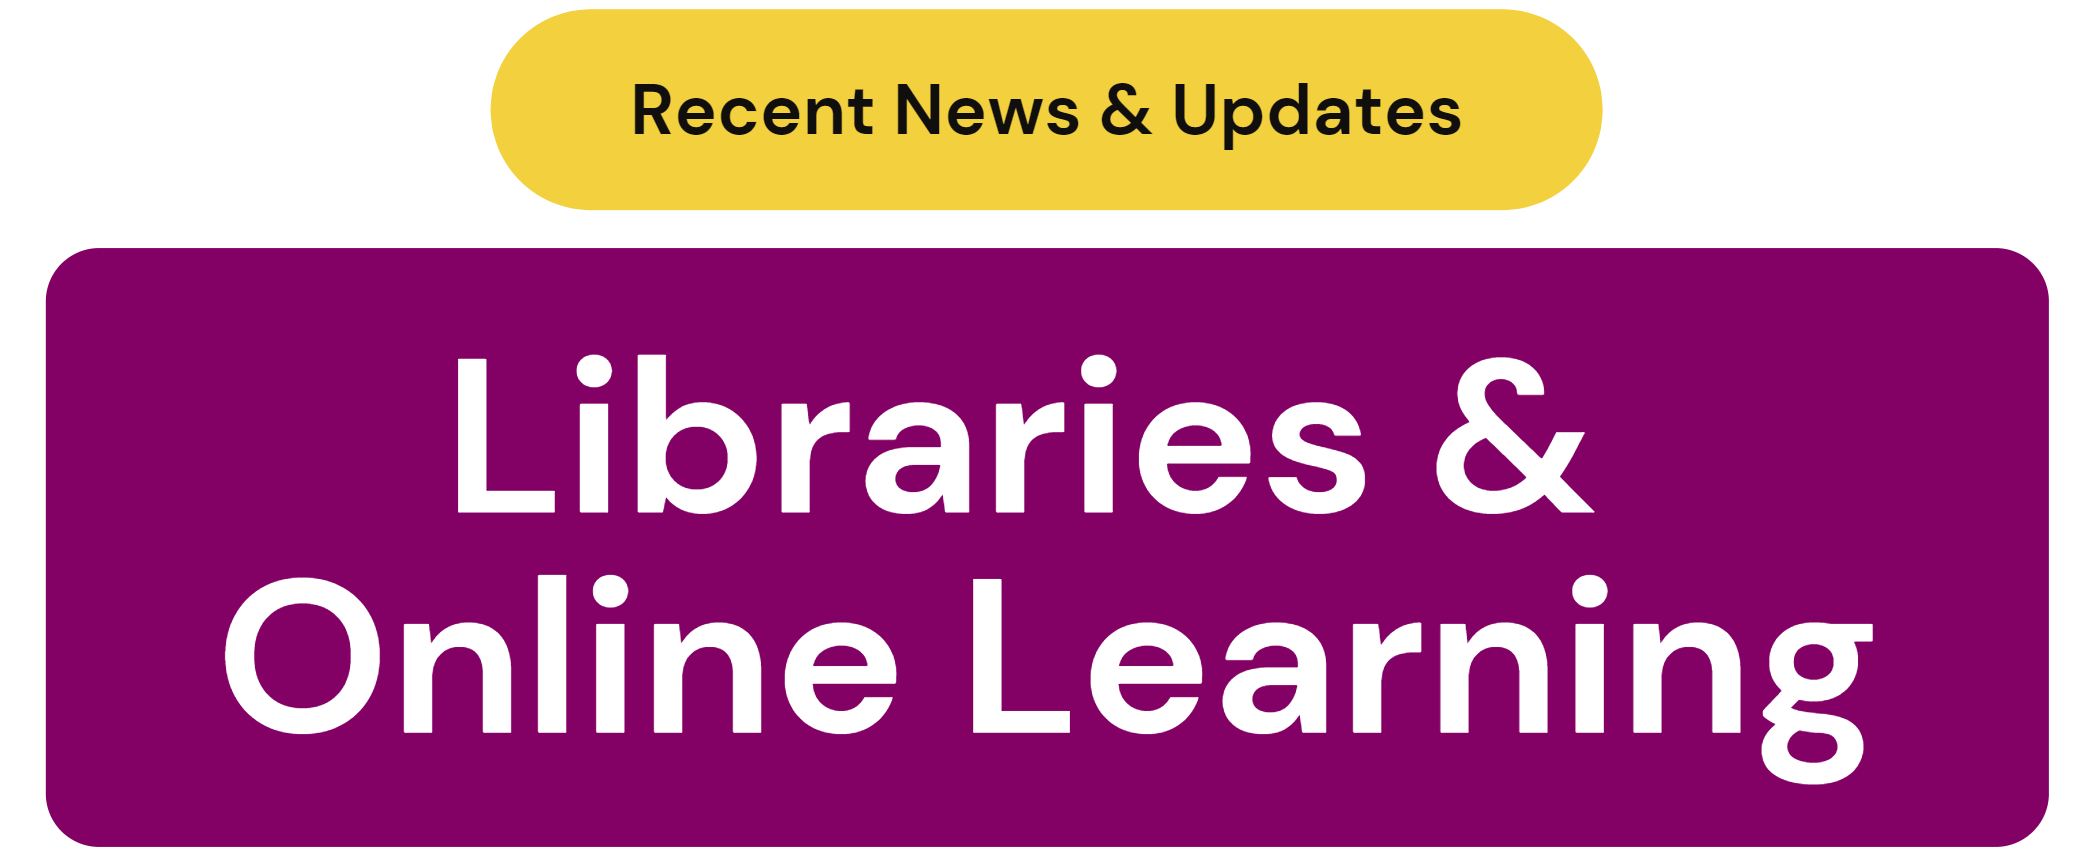 Title Slide: Recent News & Updates (black text on yellow box) from Libraries and Online Learning (white text on purple box)